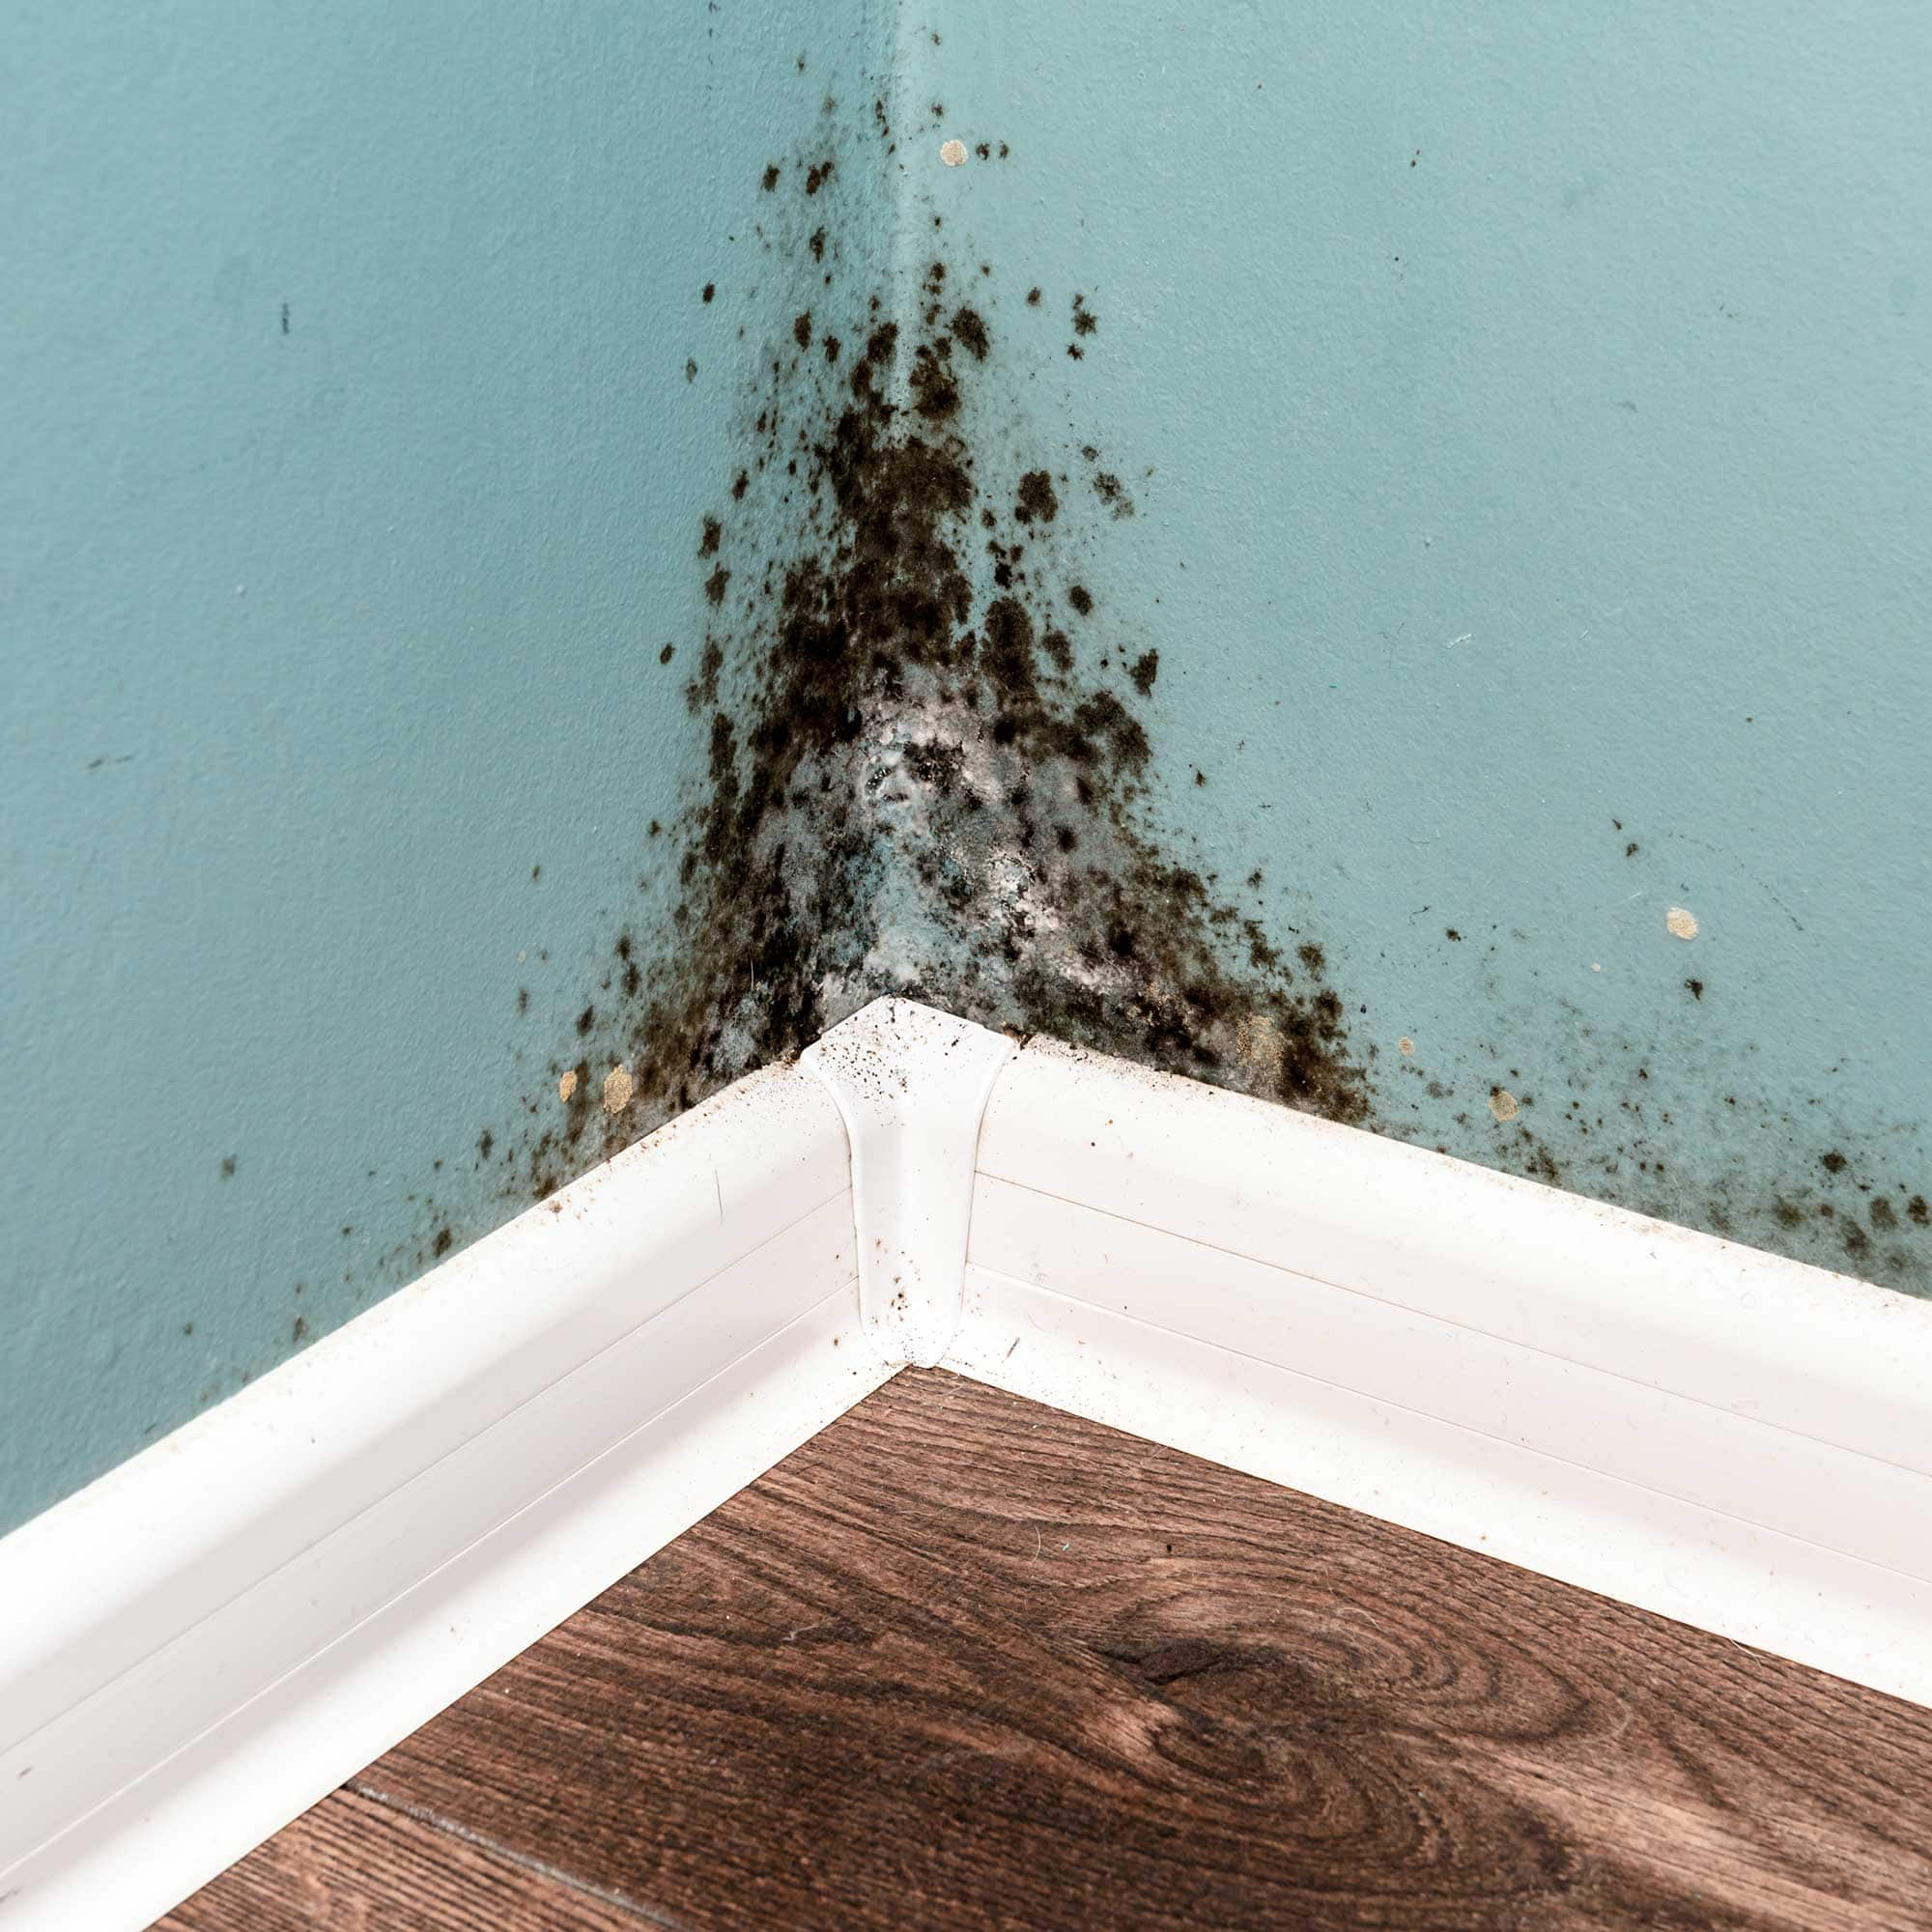 Guide to Mold Remediation after a Flood